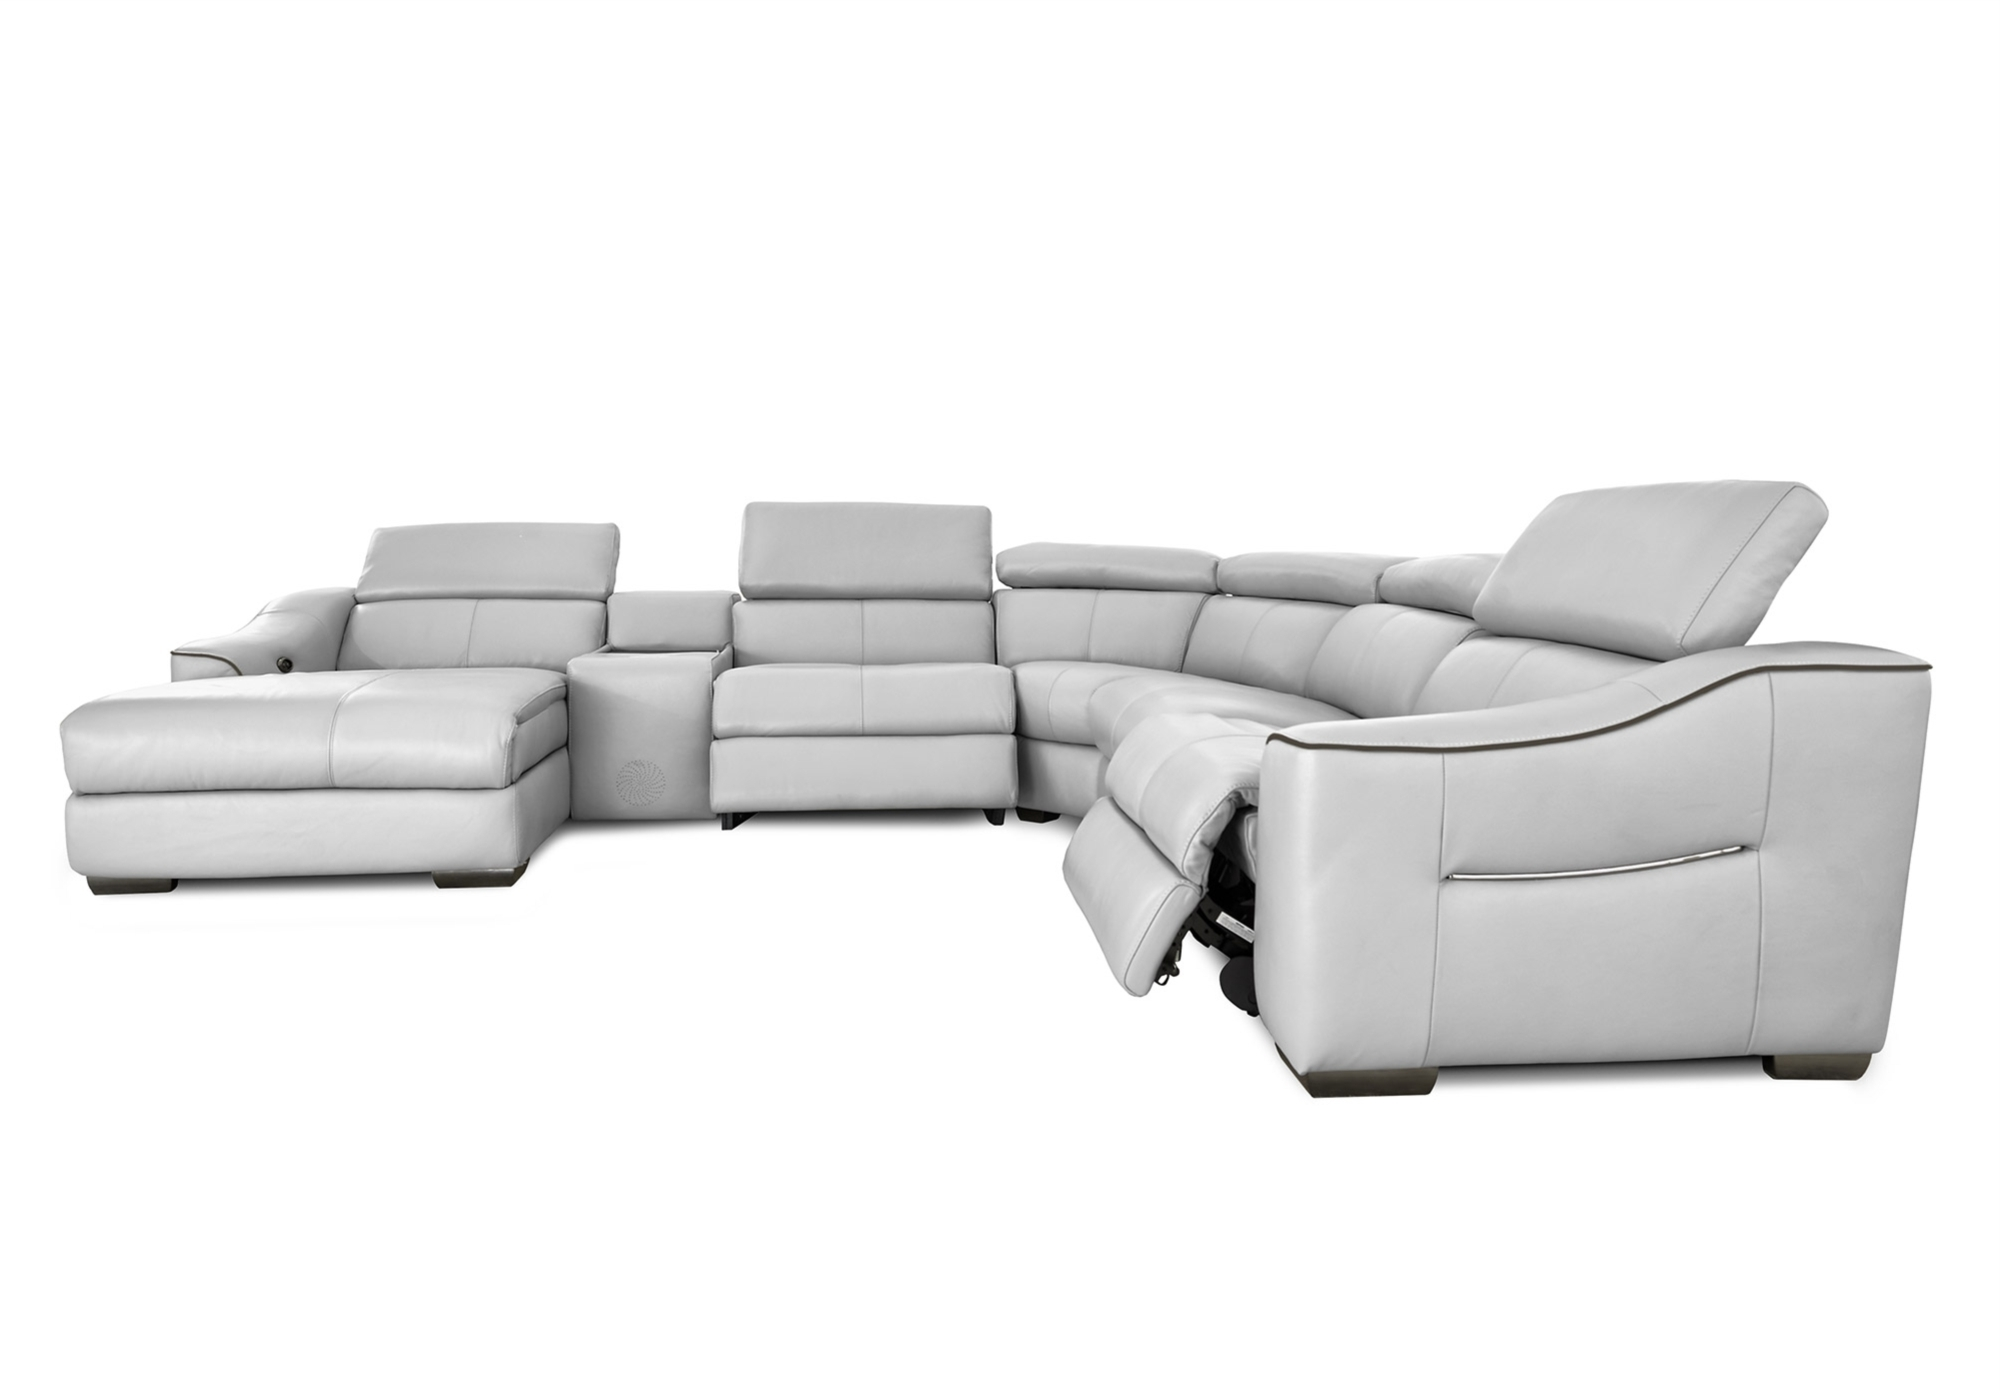 Rhf Corner Chaise Sofa – Elixir – Gorgeous Living Room Furniture Pertaining To Most Recent Corner Chaises (View 12 of 15)